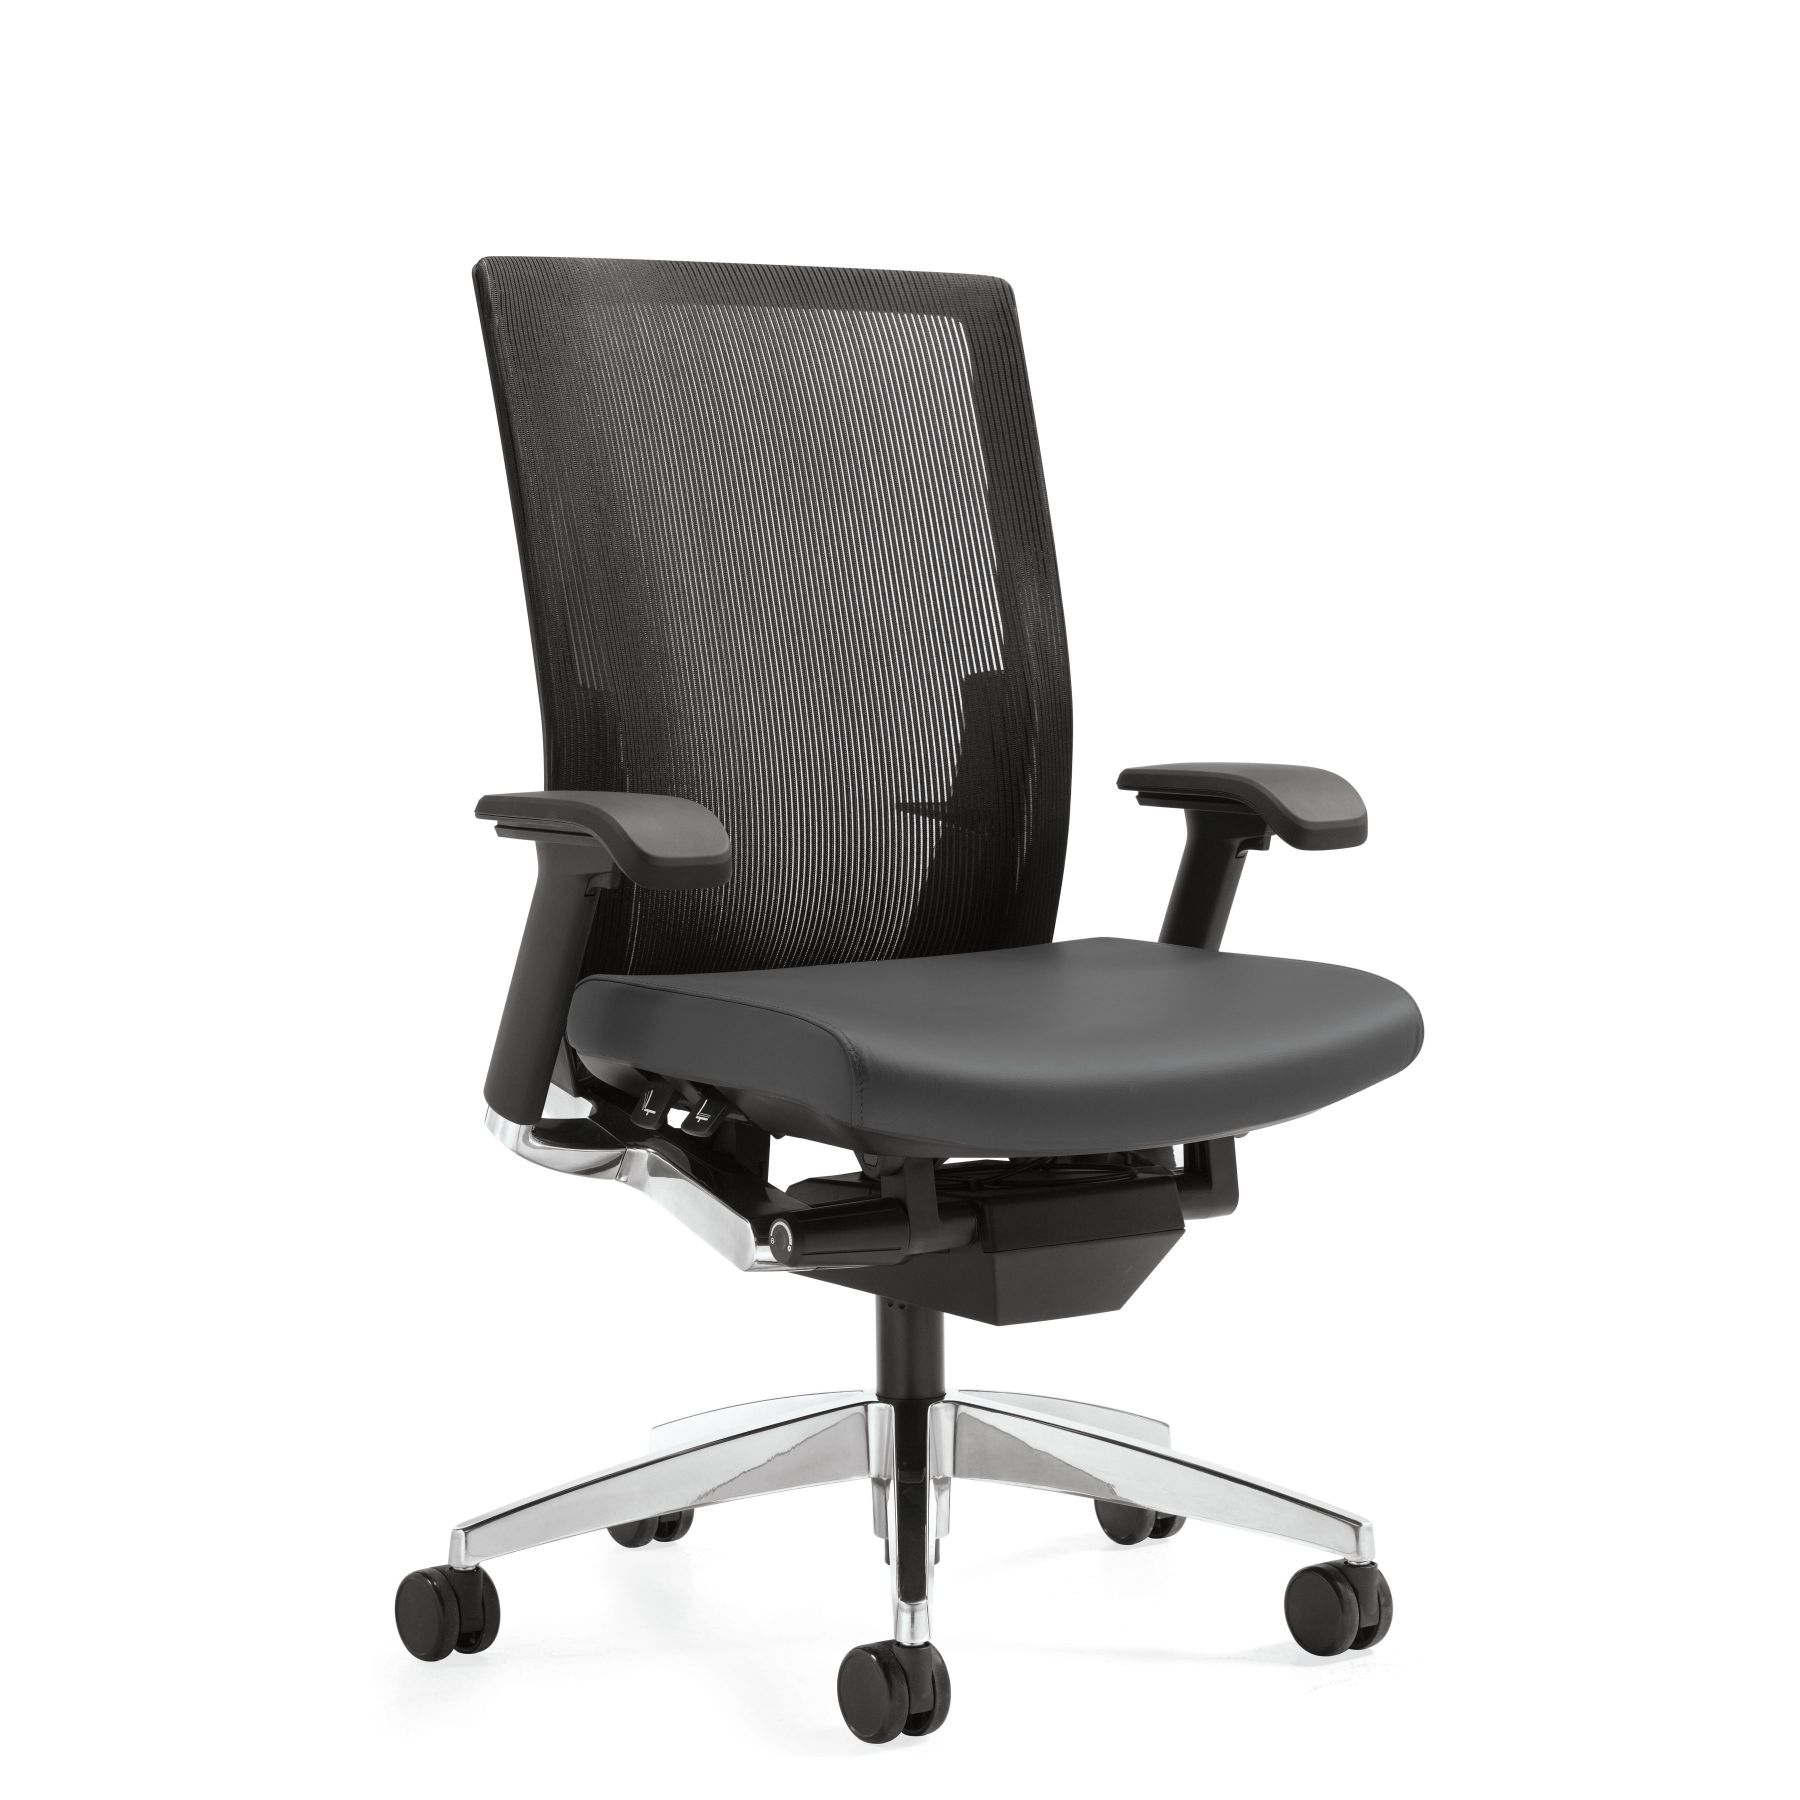 Office Chair Companies: Global Furniture, G20™ High Back Syncro-Tilter Mesh Office